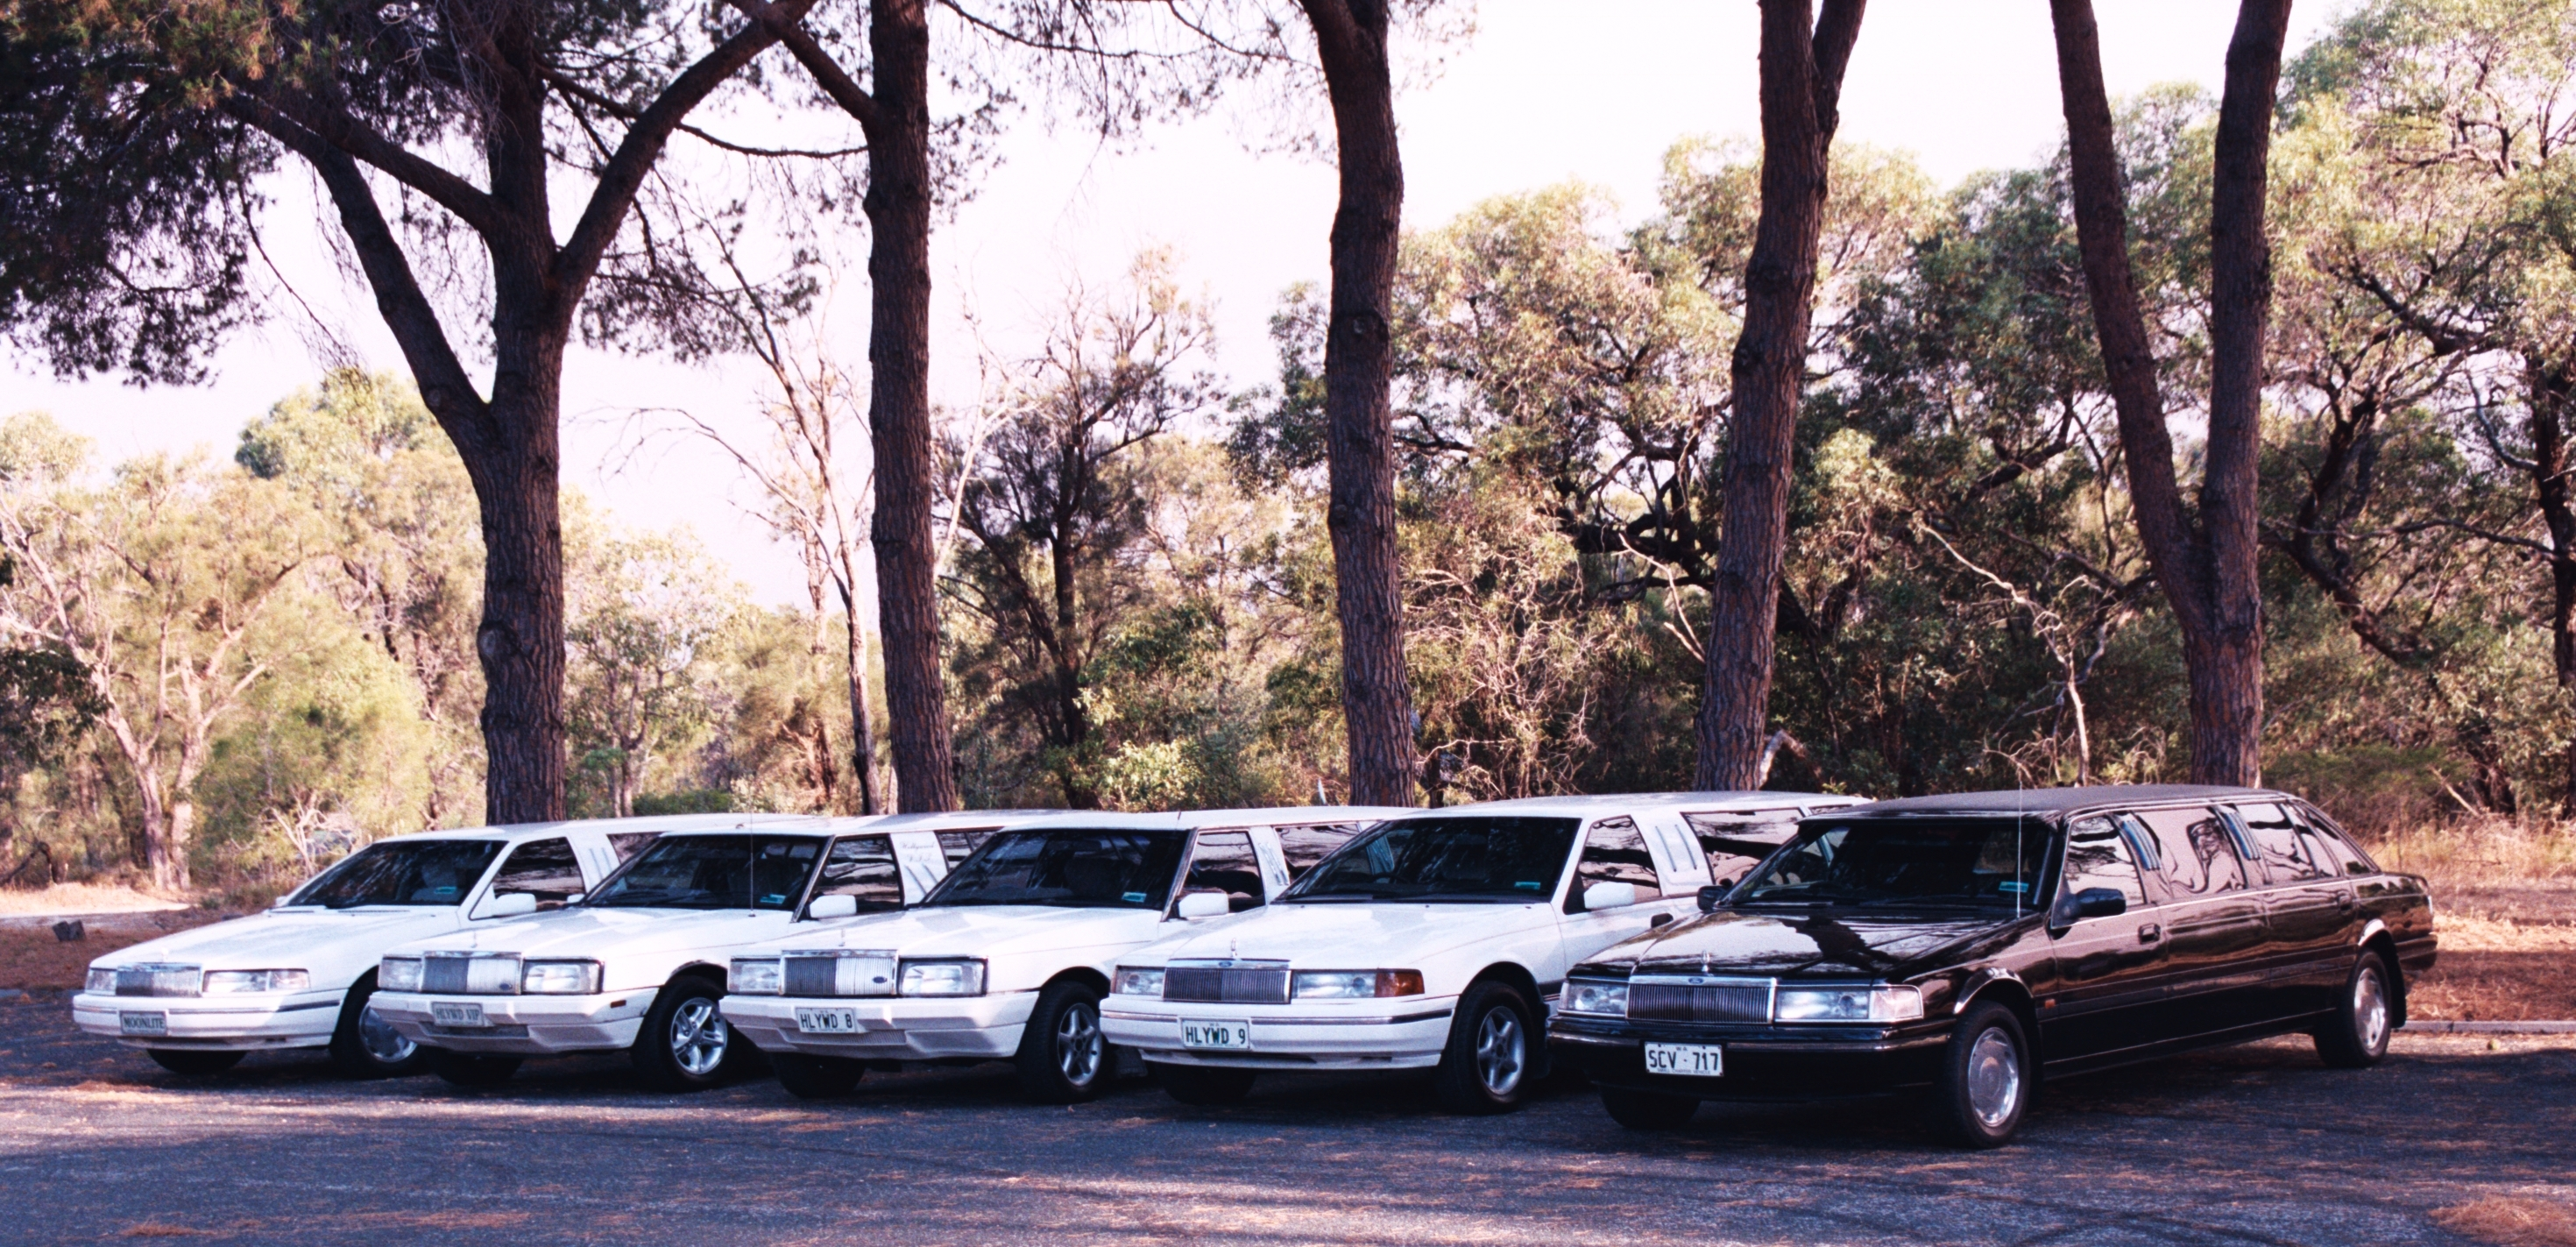 Hollywood VIP Limousines - Tourism Brisbane